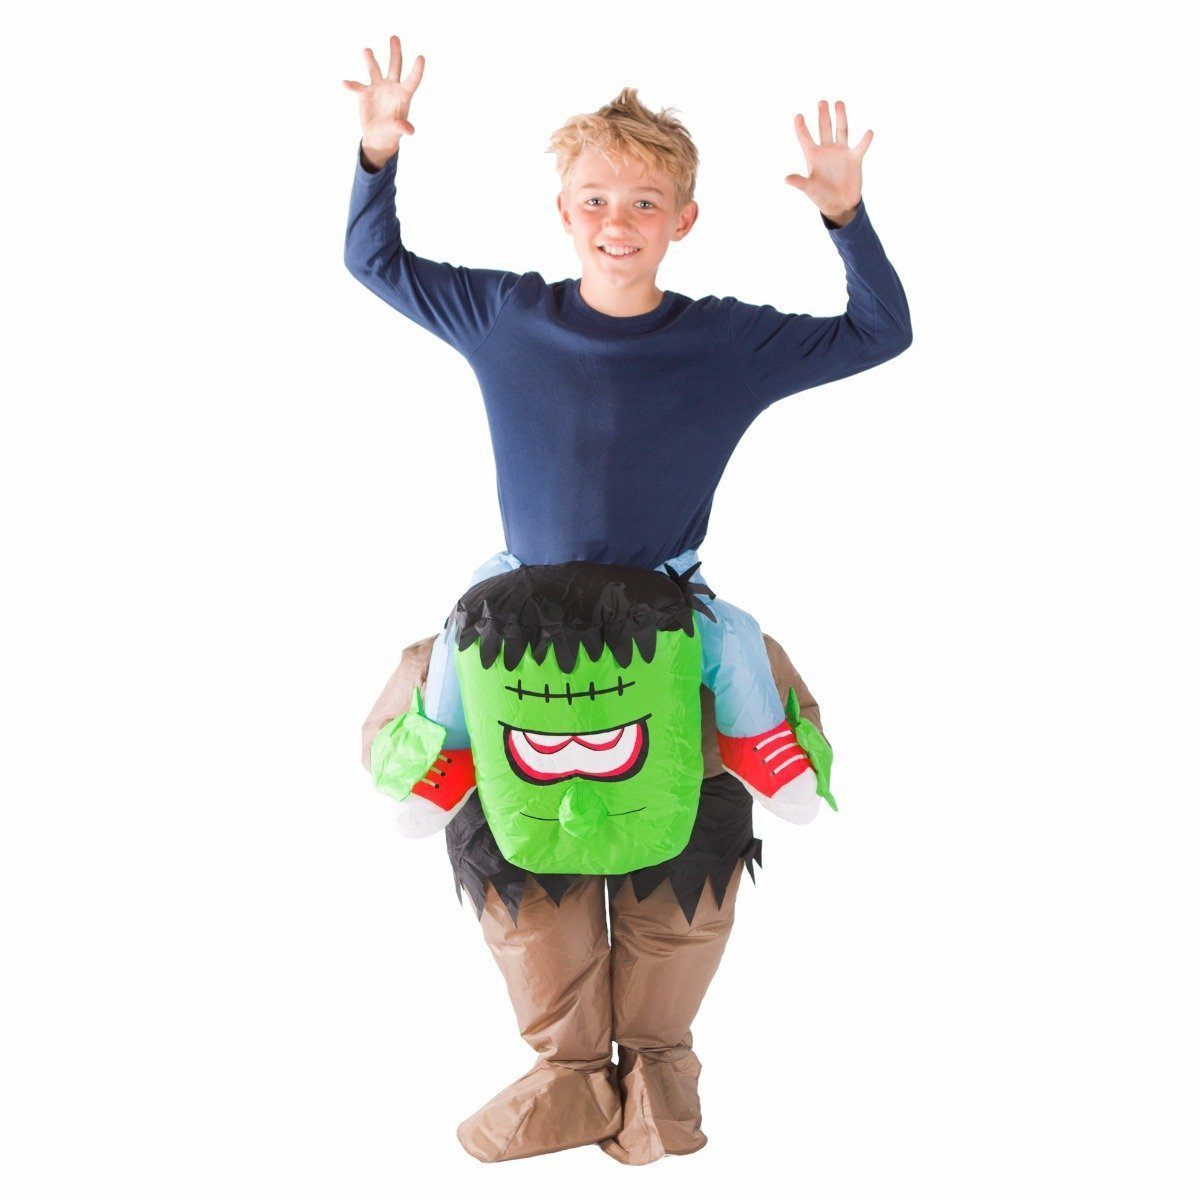 Costume Gonfiabile 'Lift You Up' da Frankenstein per Bimbi